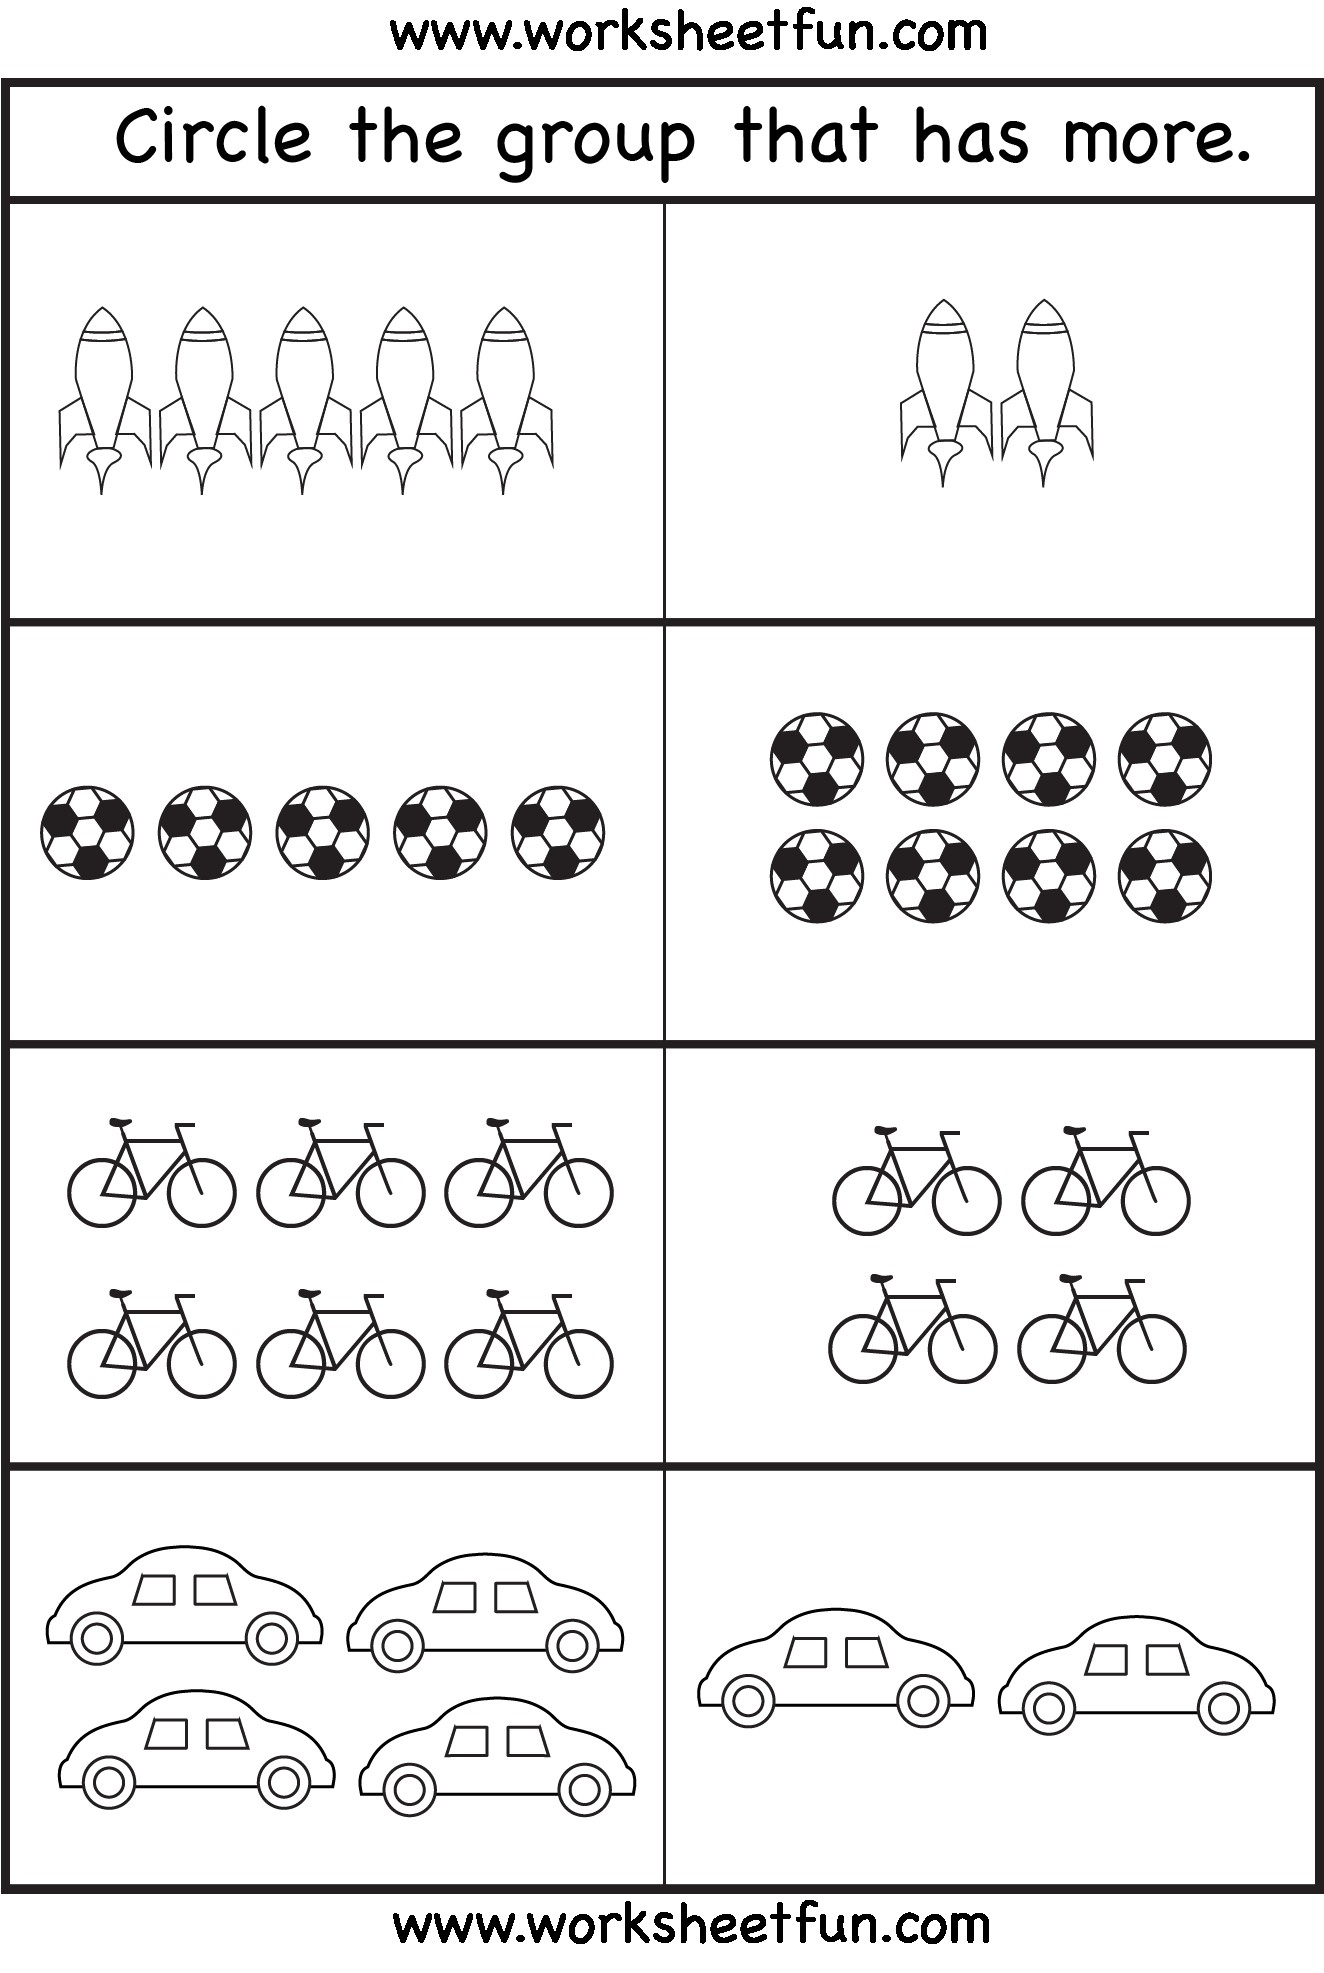 Free 1st Grade Language Arts Worksheets Pictures